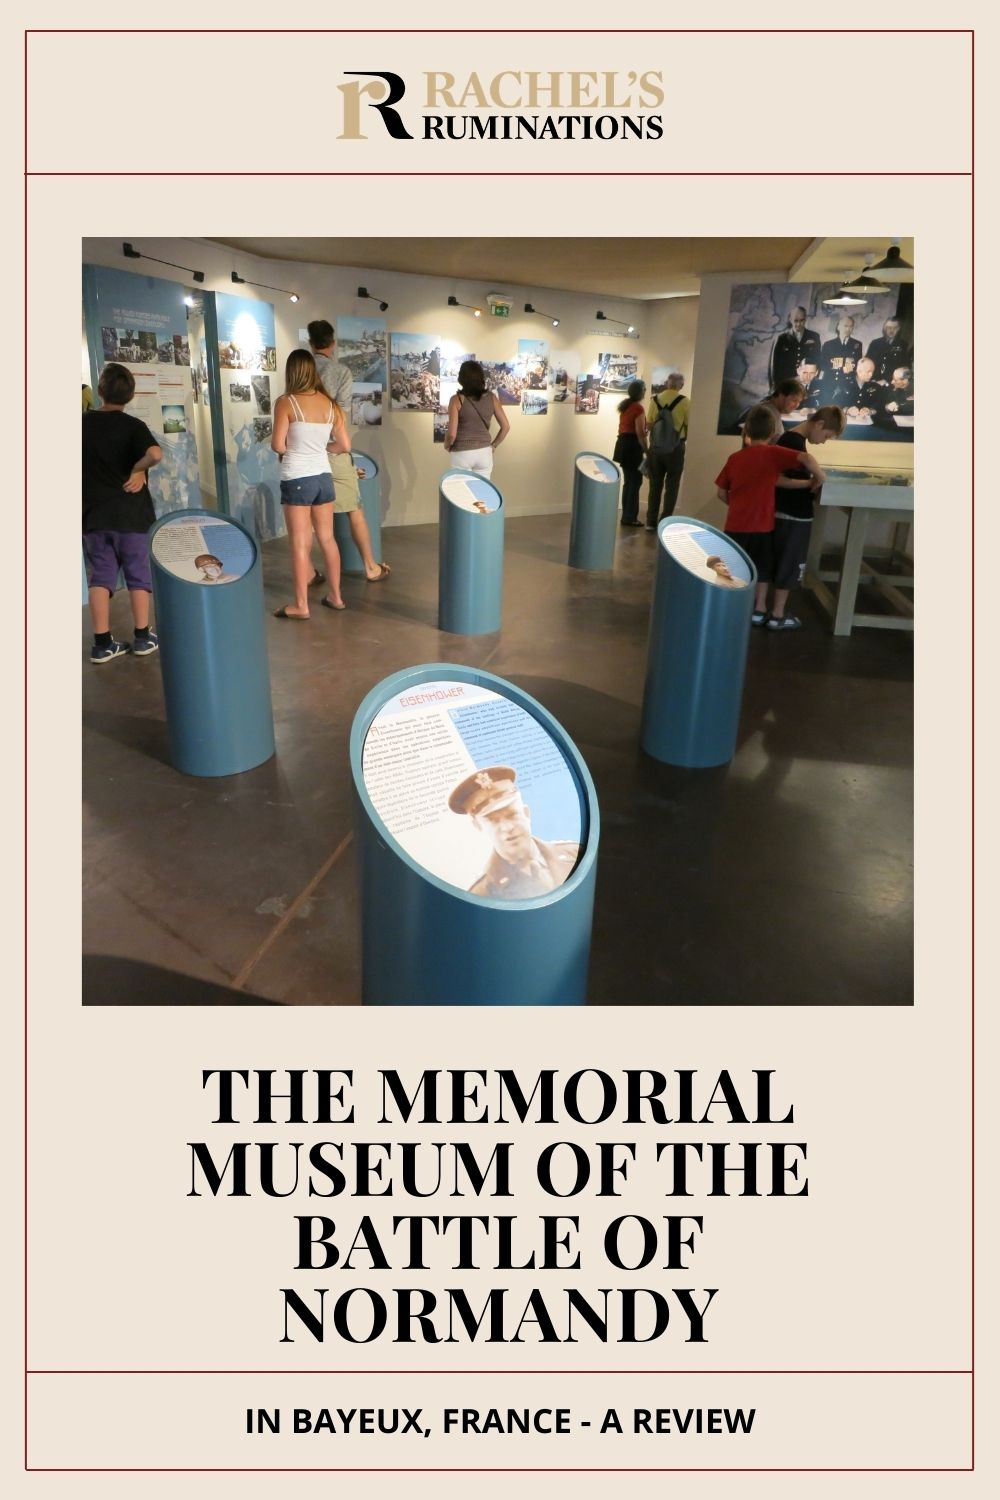 A not-very-favorable review of the Memorial Museum of the Battle of Normandy in Bayeux, France, with other ideas for learning about D-Day. via @rachelsruminations